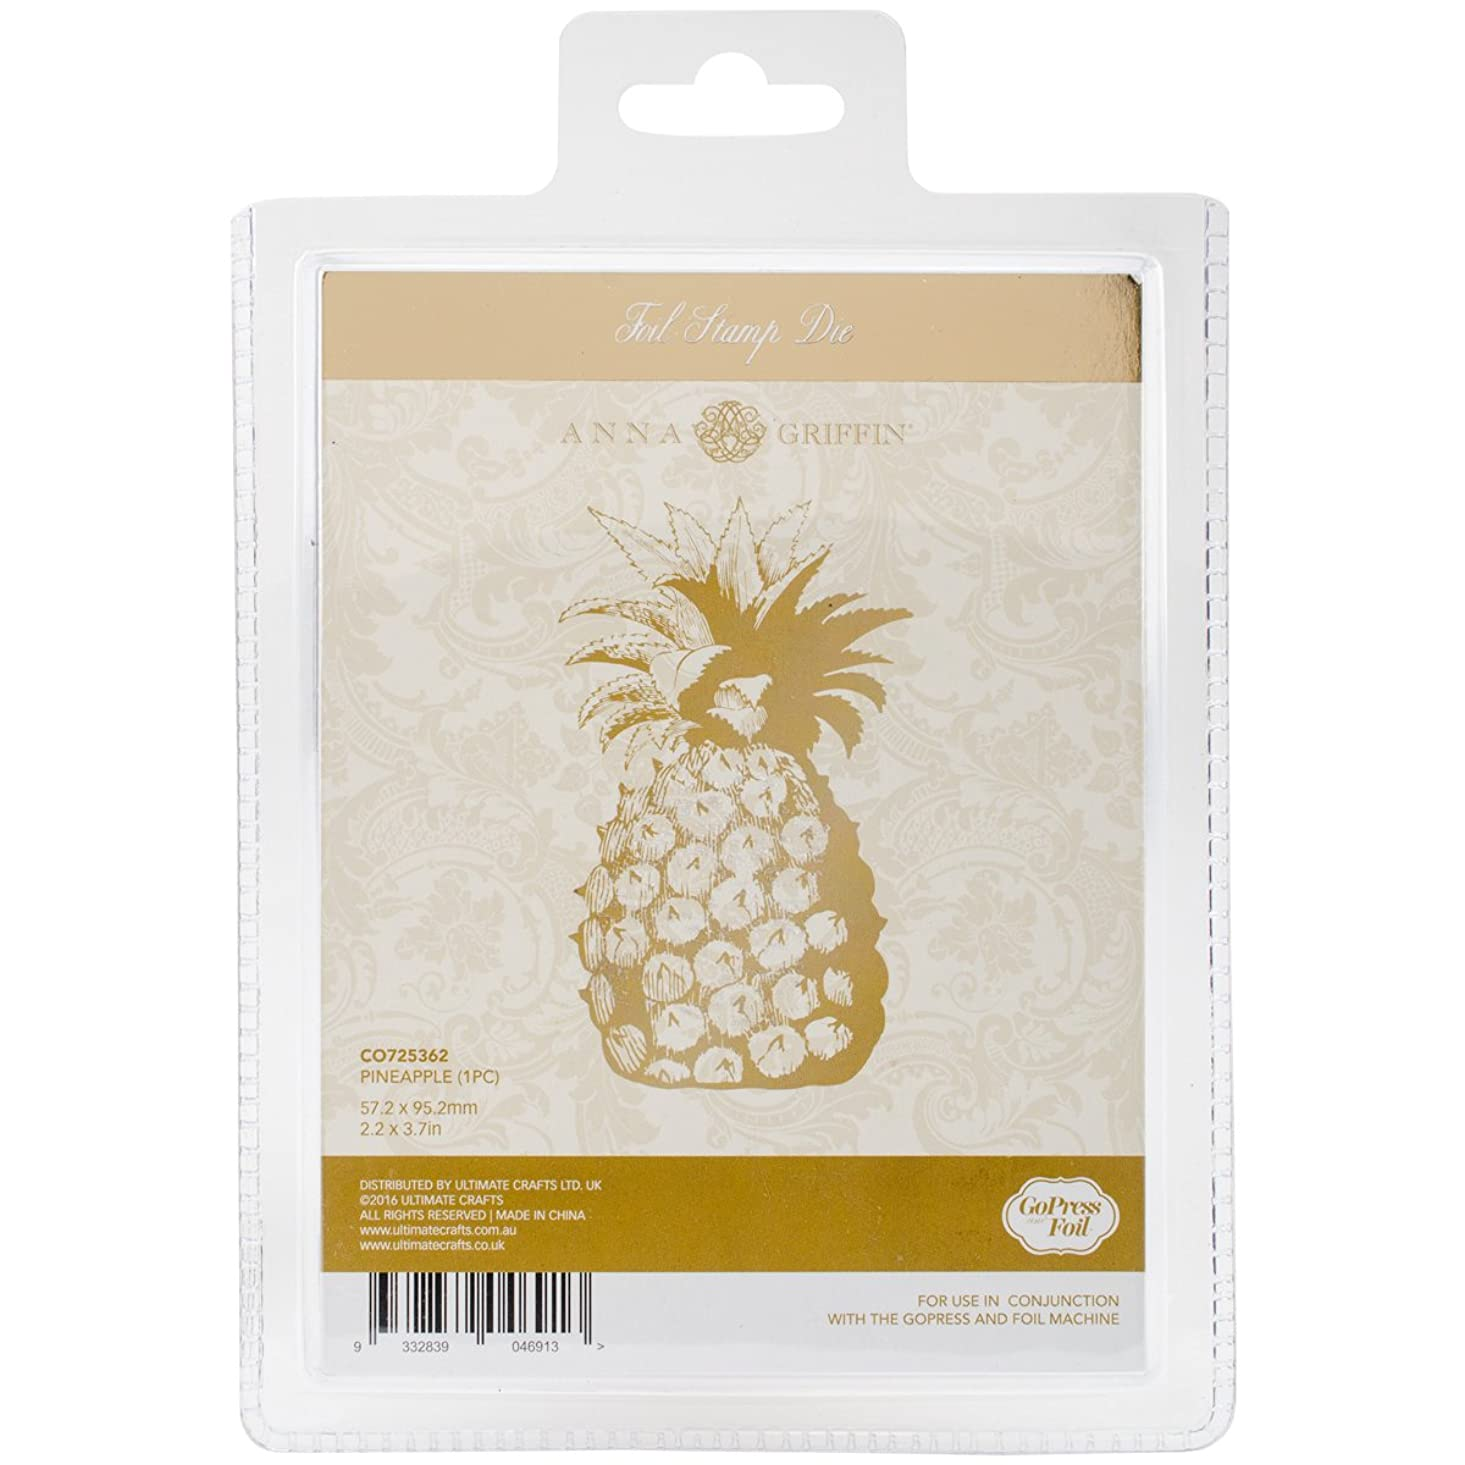 Artdeco Creations Pineapple Couture Creations Anna Griffin Hotfoil Plate xyaoc899958